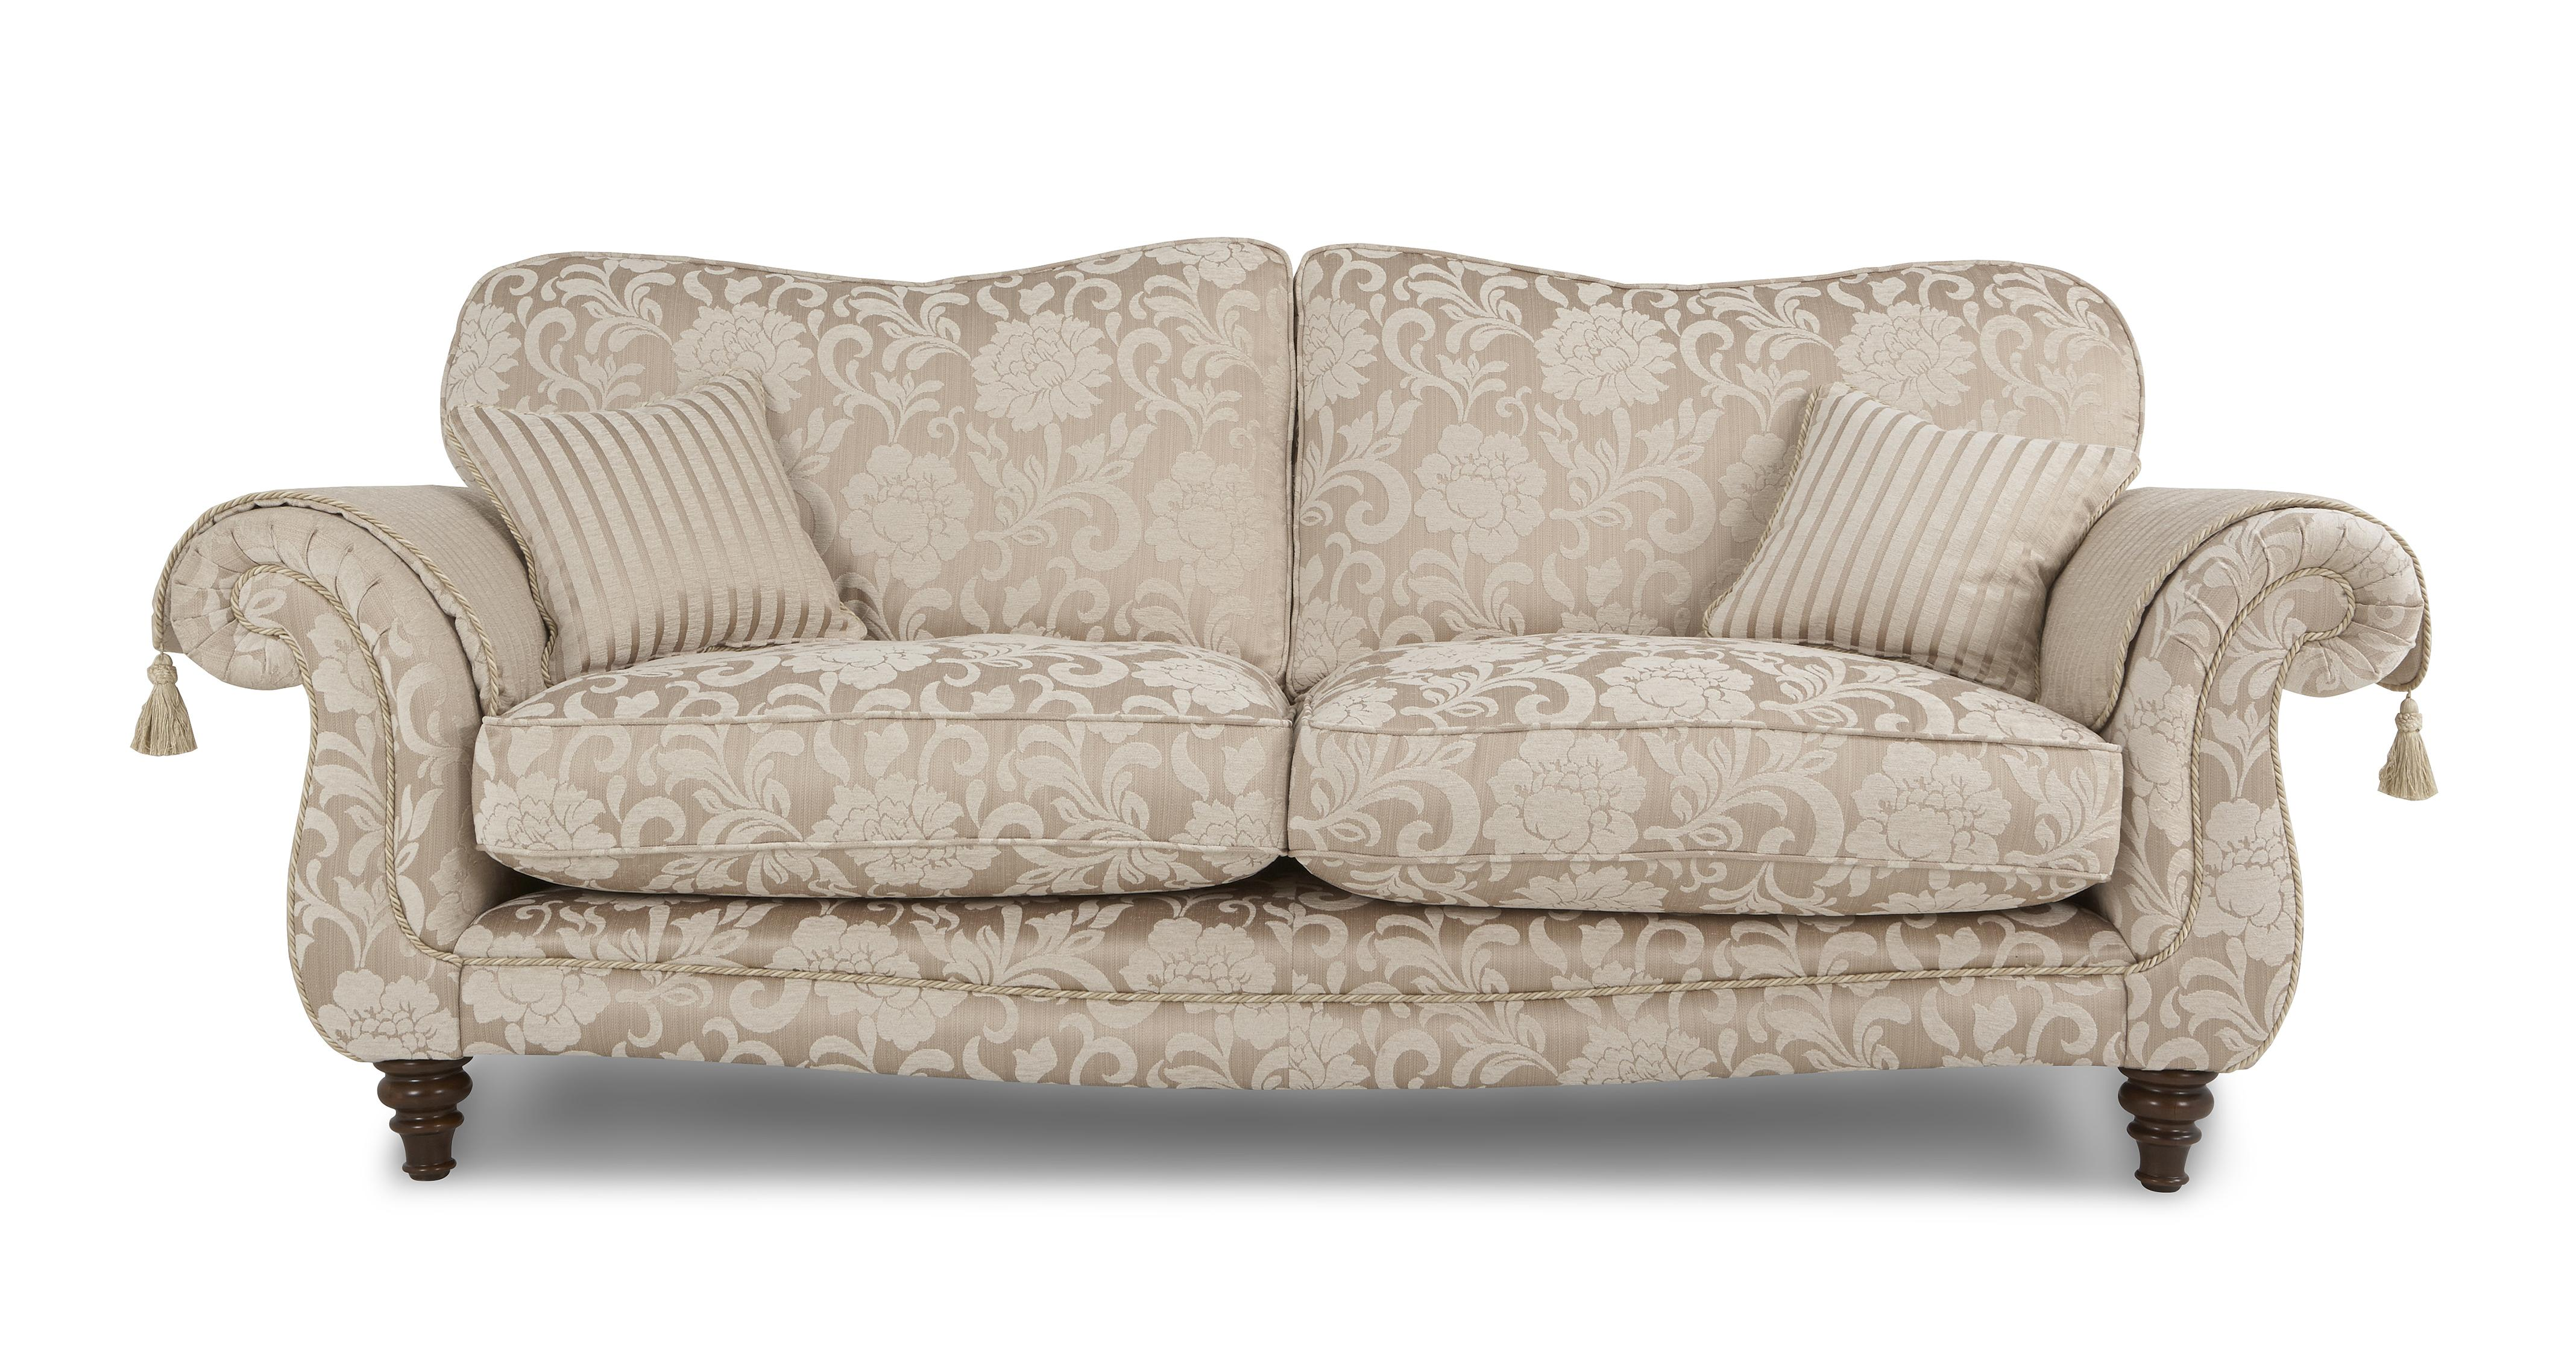 Dfs 2 Seater Leather Sofa DFS BROWN LEATHER 5 SEATER